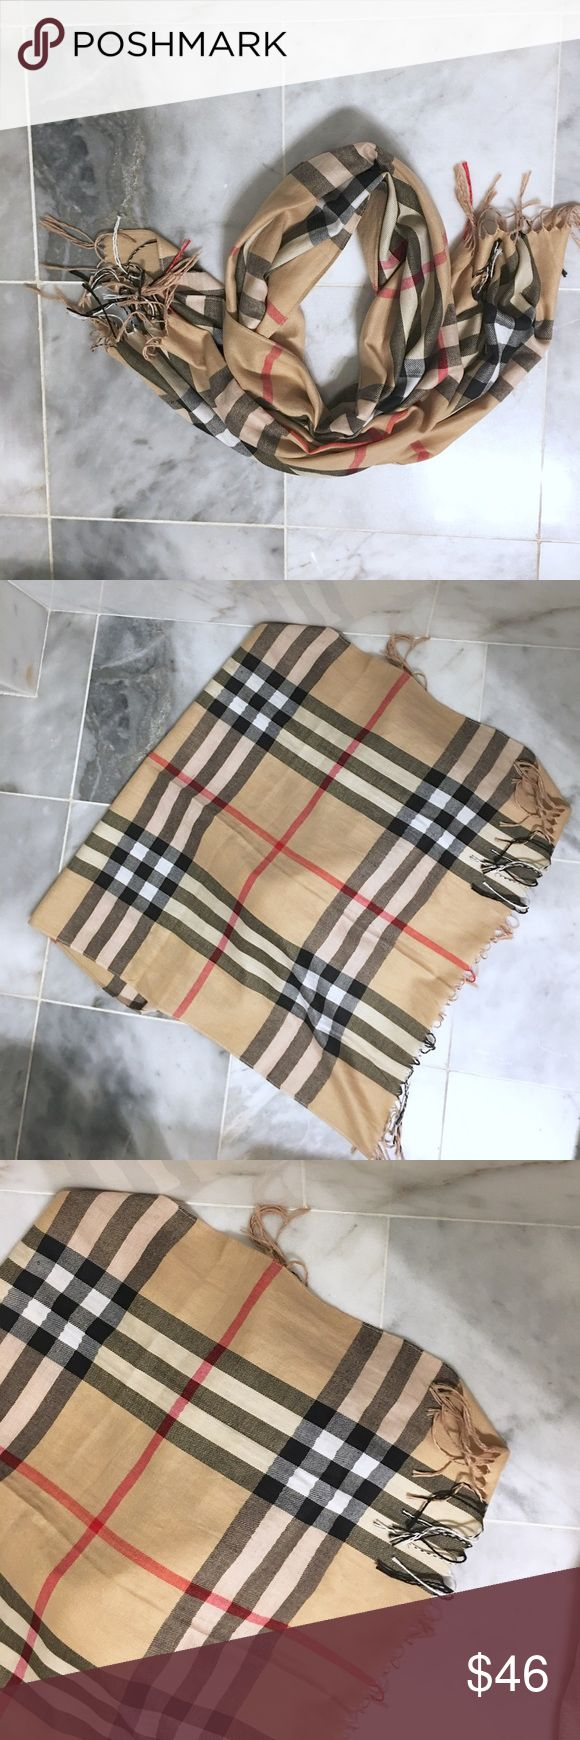 Burberry Print Scarf Like Burberry Print Scarf (not authentic)🌾Shipped from a smoke and pet free home 🌾Bundle and save 15%✖️No Trades/PayPal🌾Bundle for Special Discount Burberry Accessories Scarves & Wraps